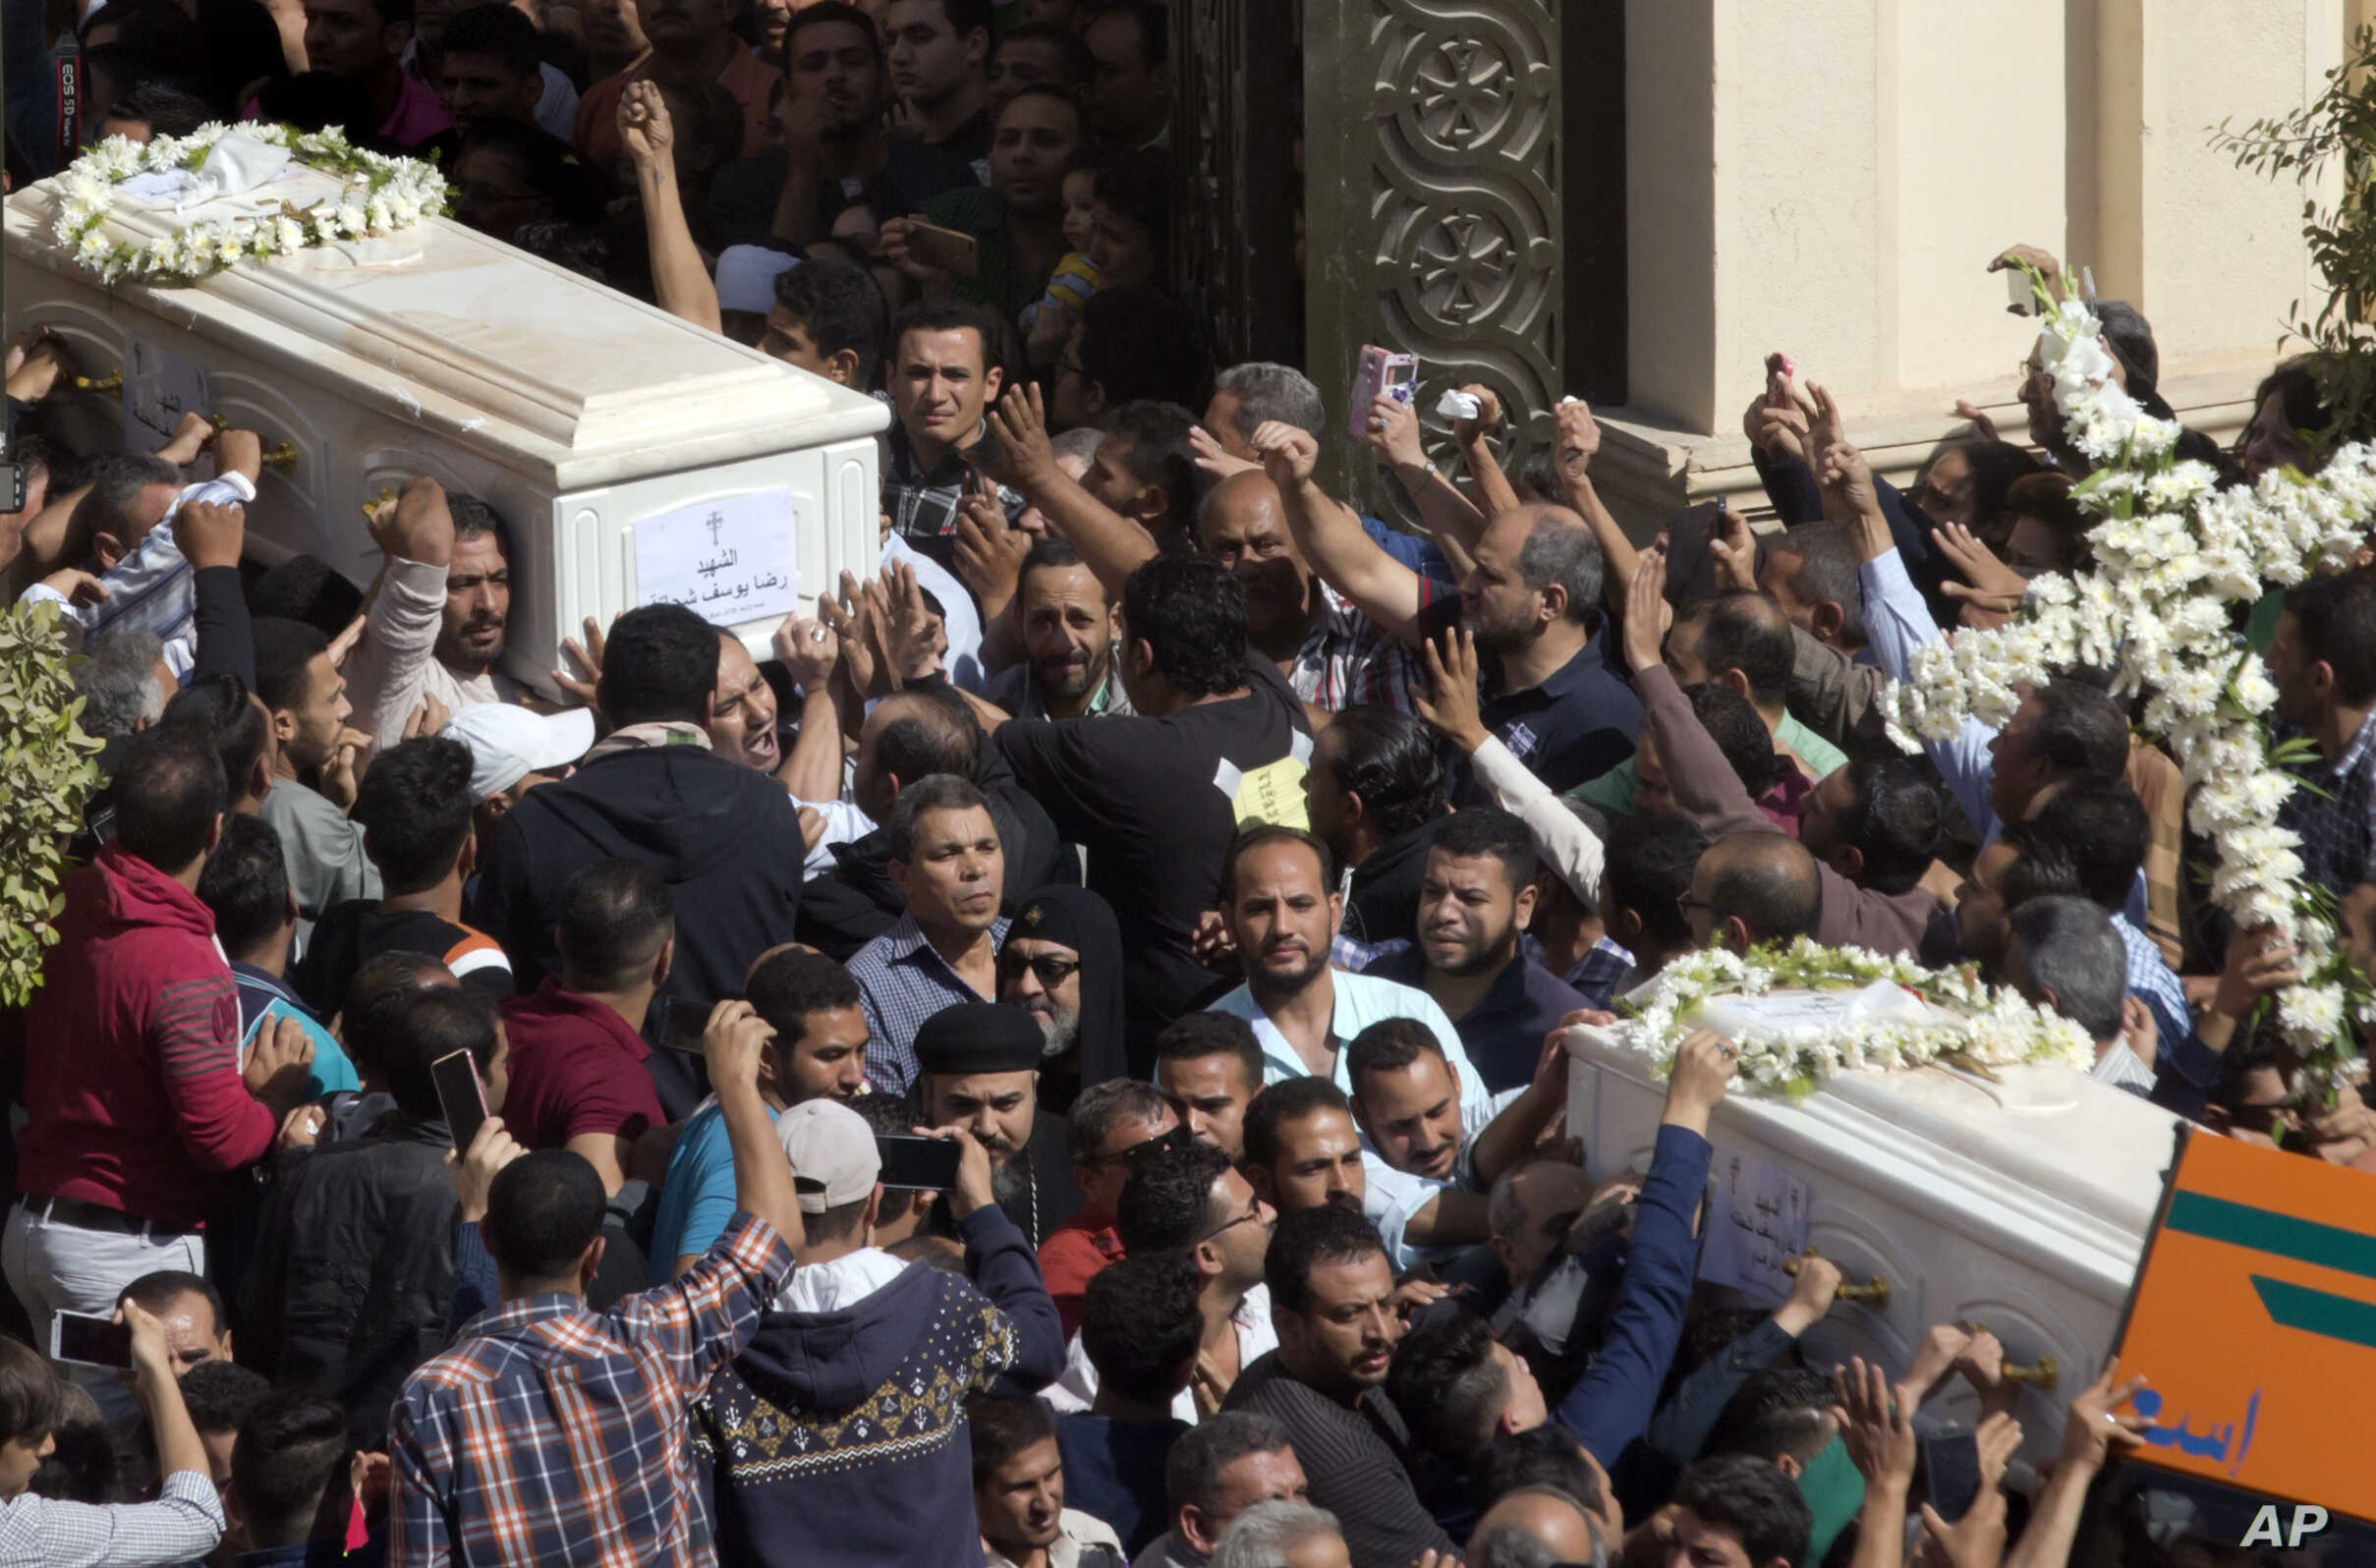 Relatives and friends carry the coffins of brothers Nadi Yousef Shehata, right, and Reda Yousef Shehata, two of the seven victims of an Islamic State ambush, in Minya, Egypt, Nov. 3, 2018.